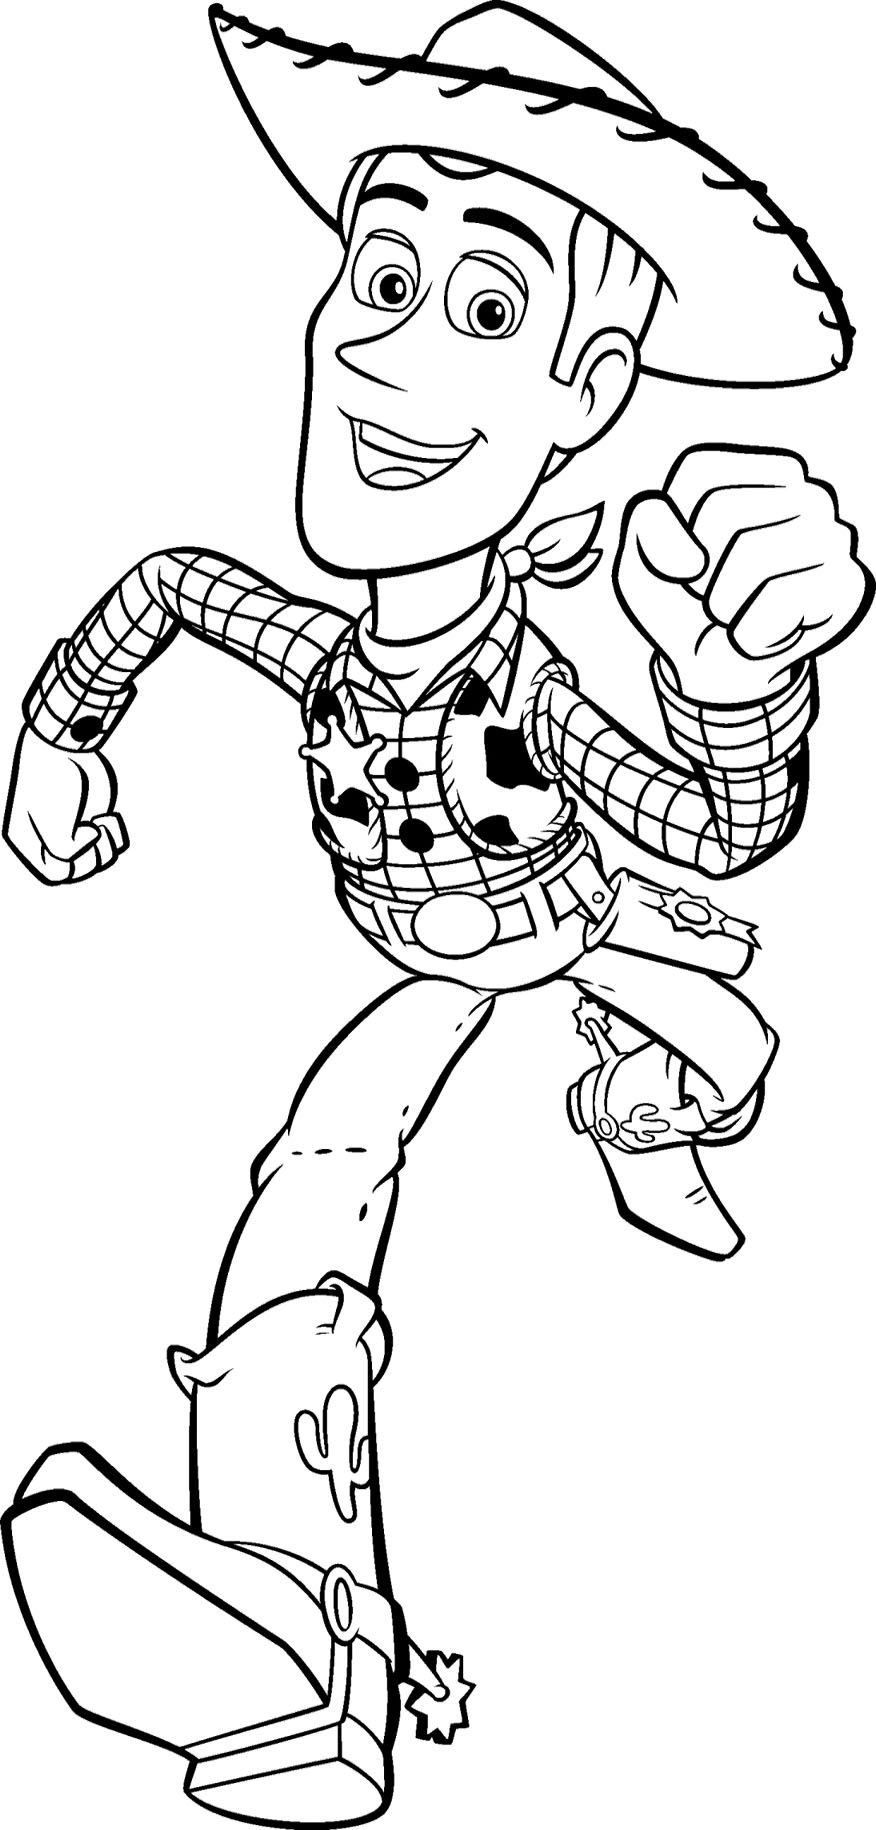 Image Result For Woody Toy Story Coloring Page Toy Story